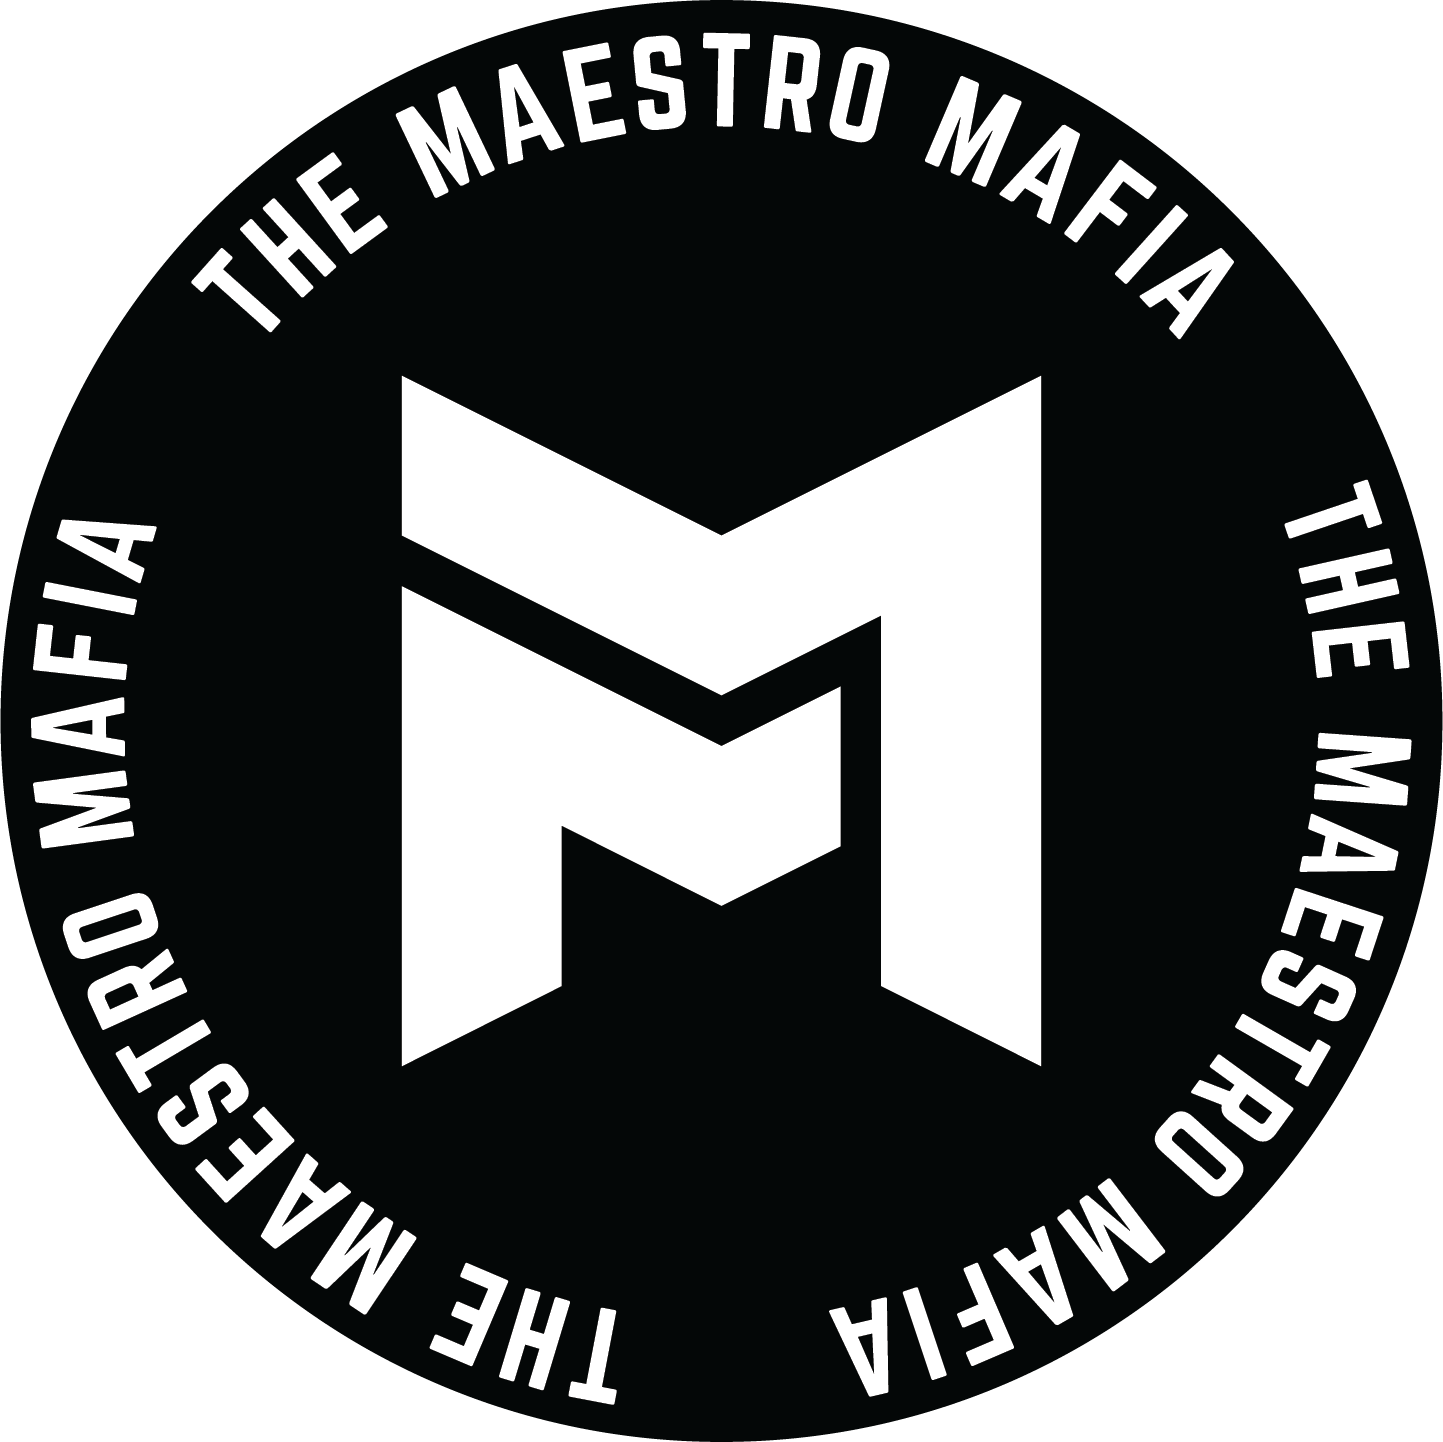 The Movement Maestro Mafia